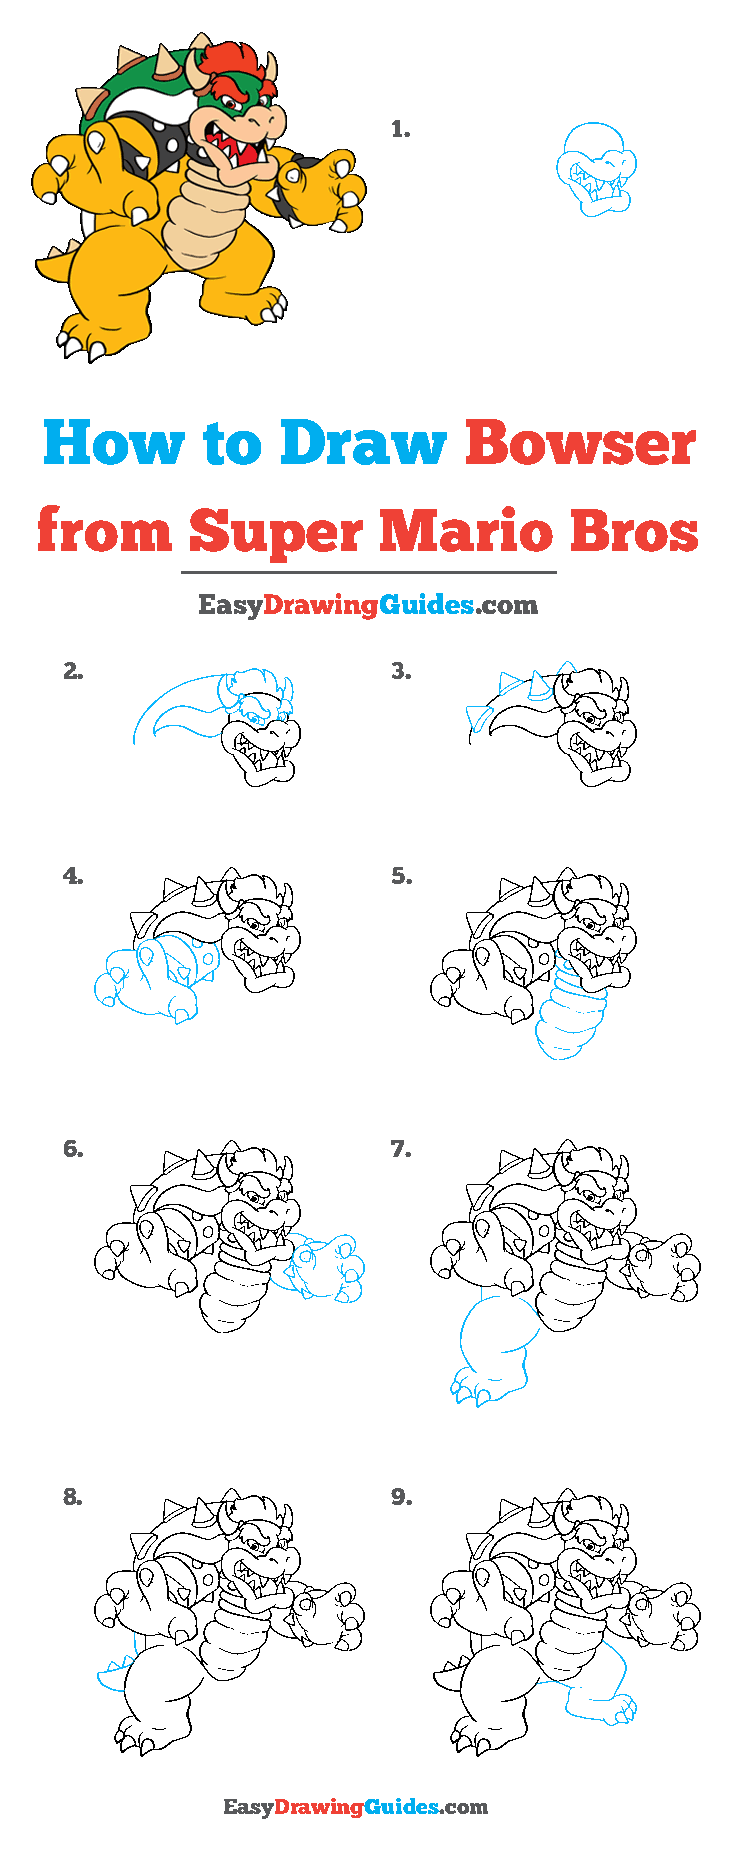 How to Draw Bowser from Super Mario Bros